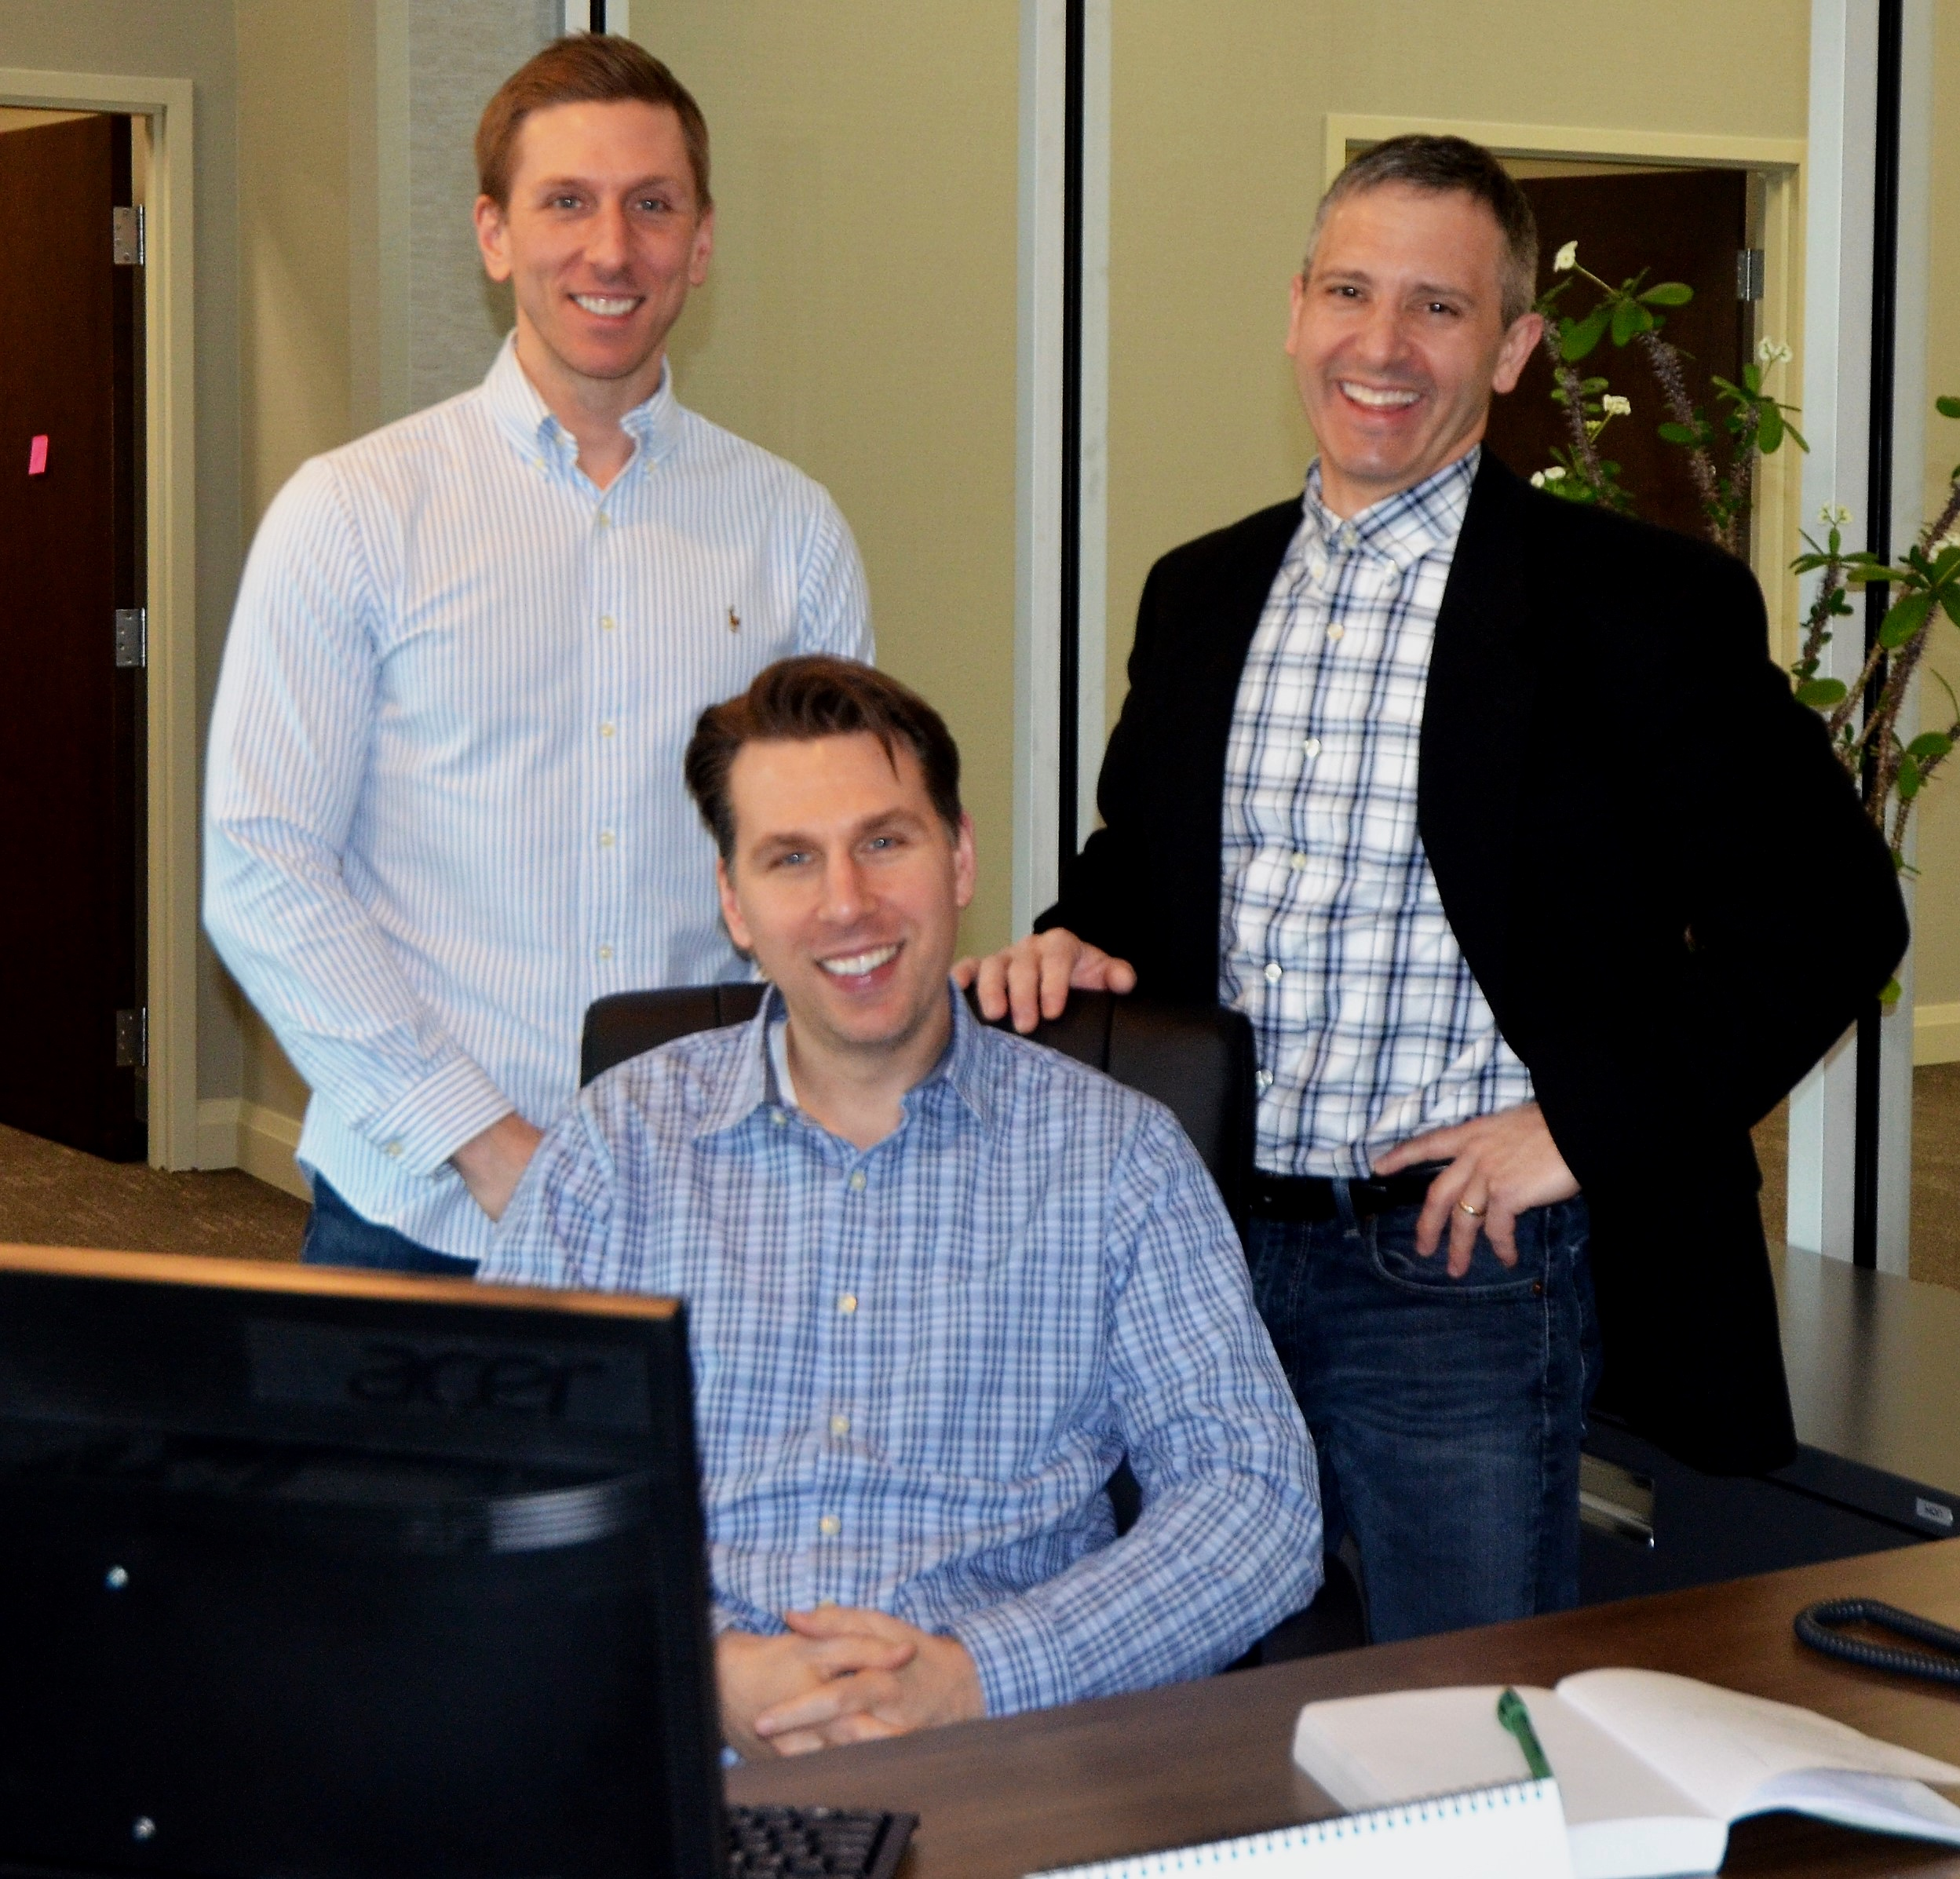 Real Estate Services Team - Surrounded by an incredible team of experienced professionals assisting with Lending, Title & Escrow Services, Video & Marketing, Website Design & Social Media and more.